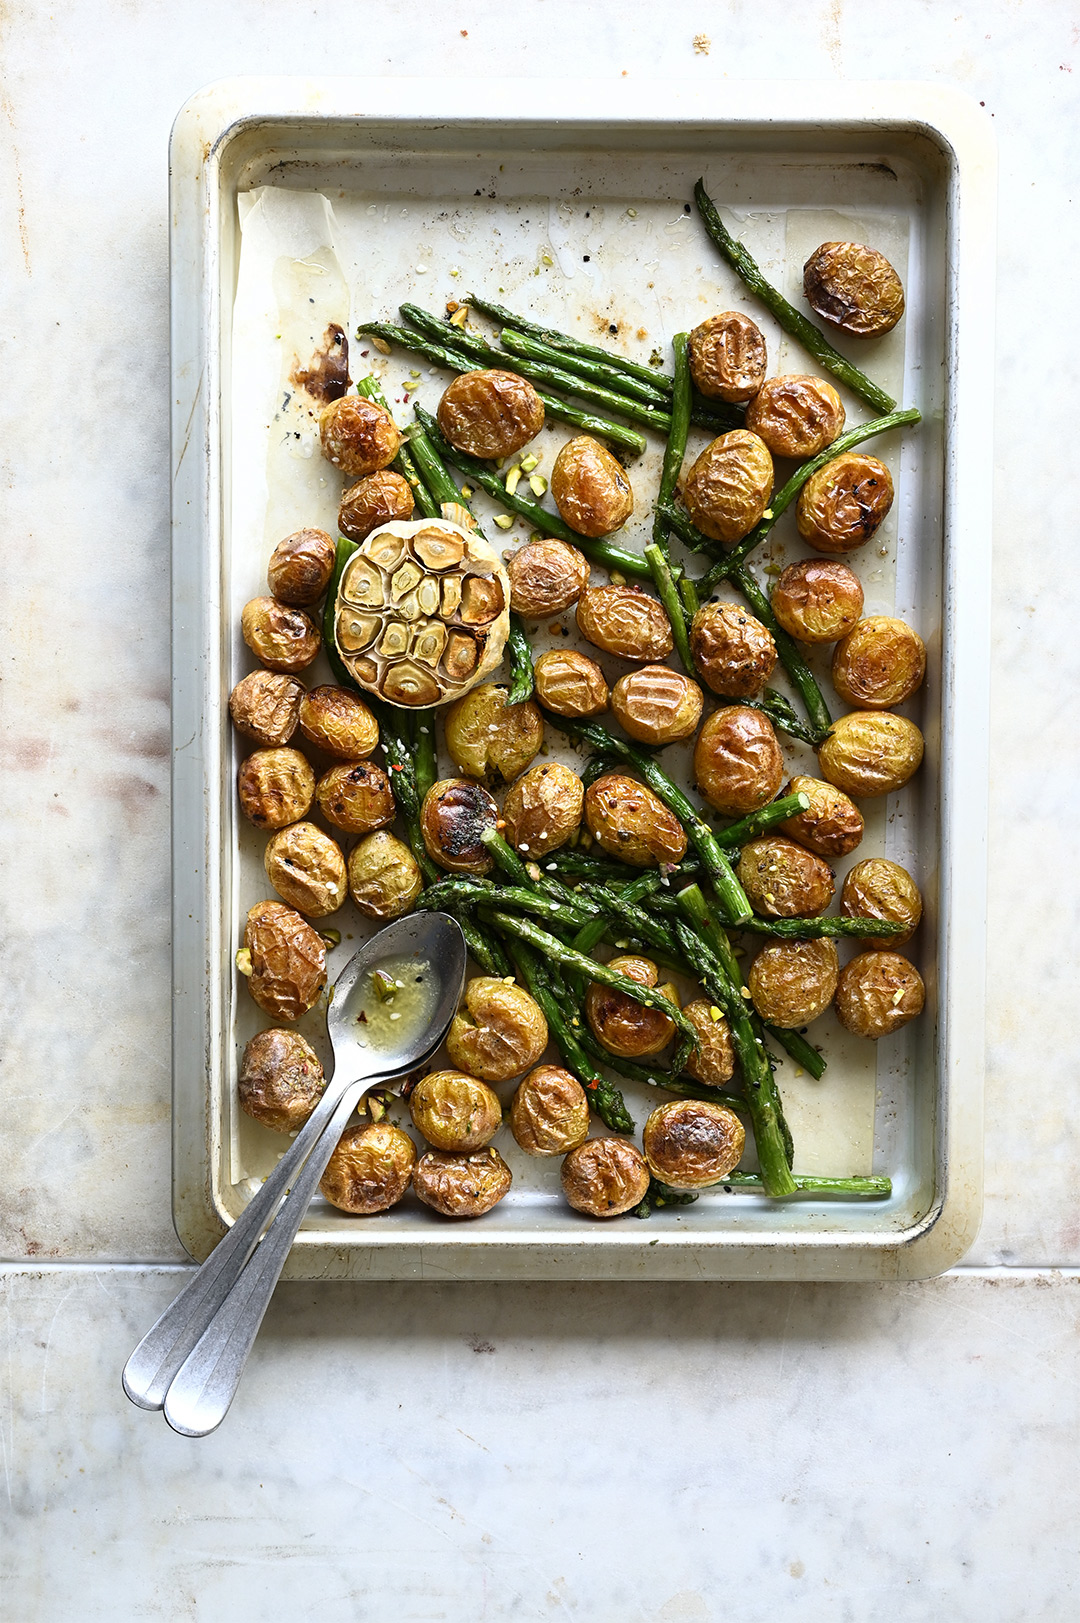 serving dumplings | Za'atar roasted potato and asparagus salad